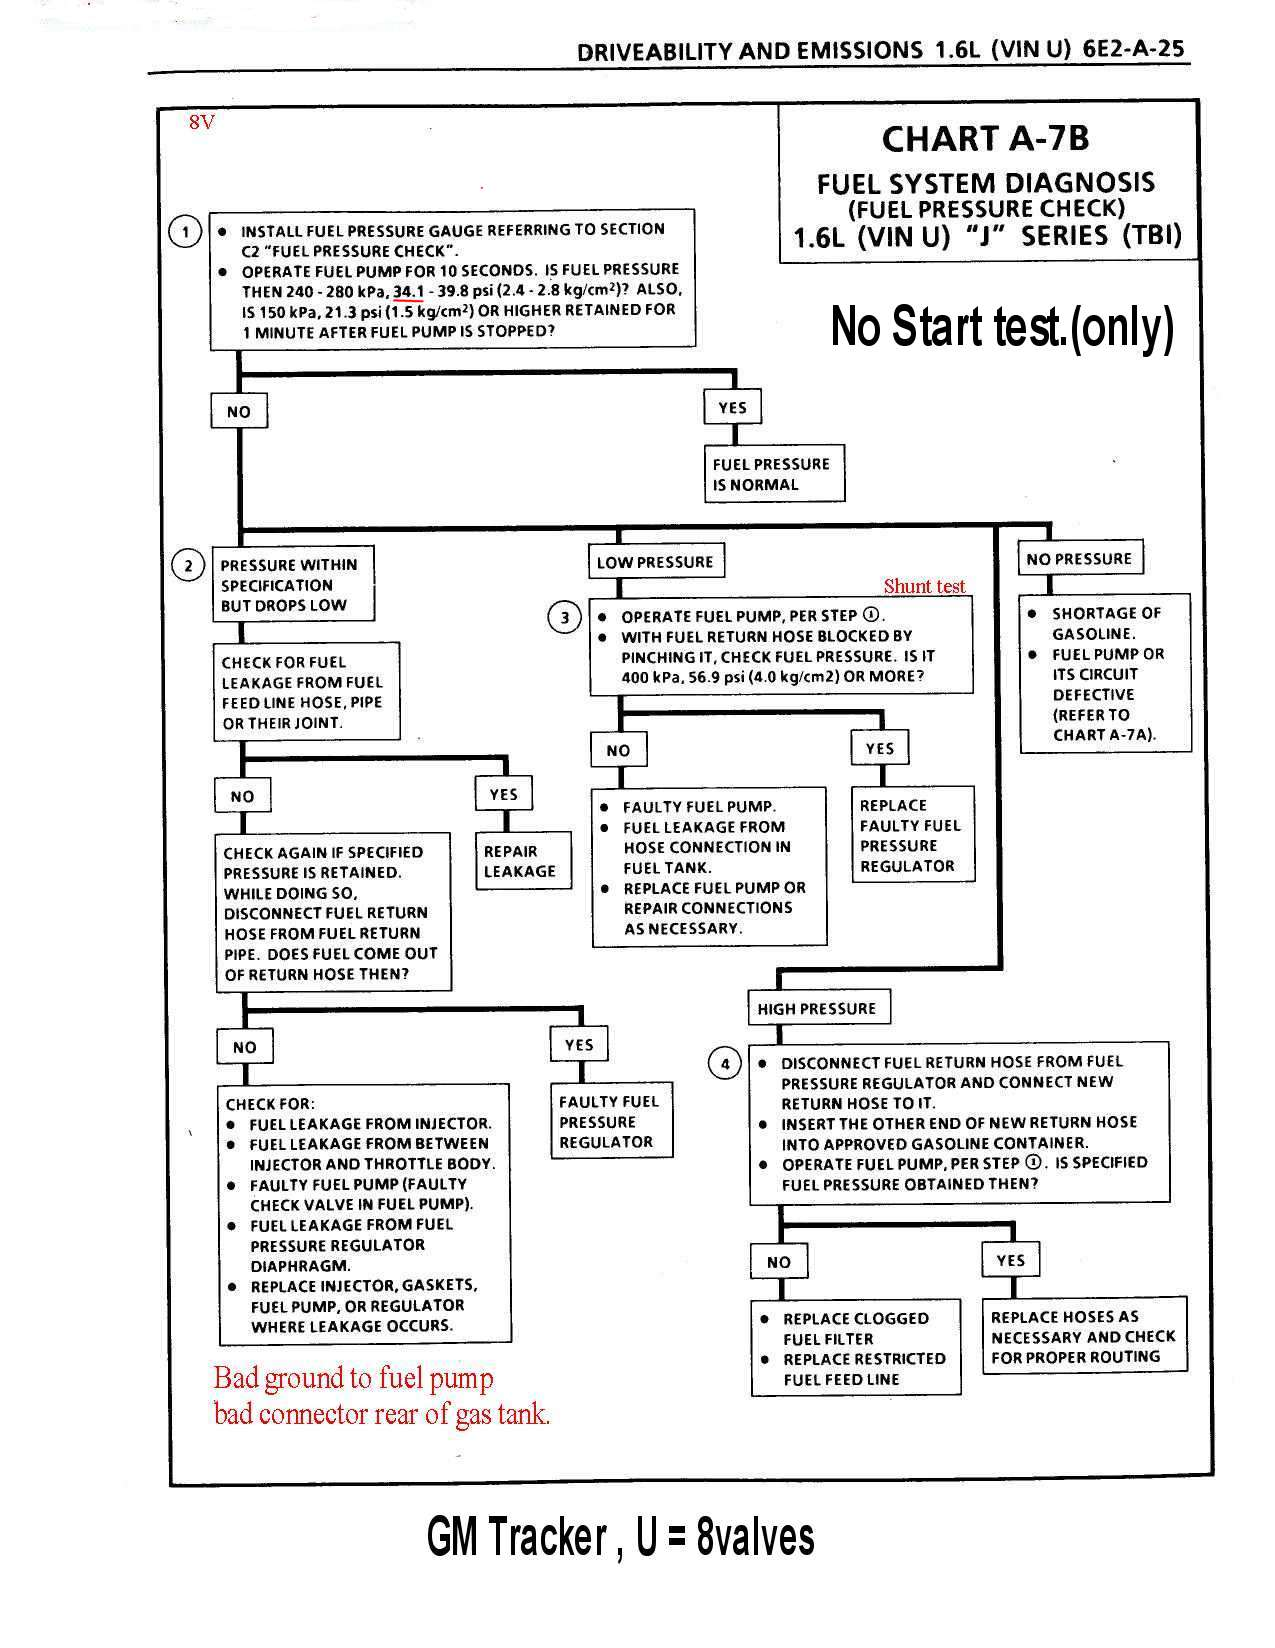 hight resolution of the 8v tbi fsm 1991 95 flow chart diagnosis page